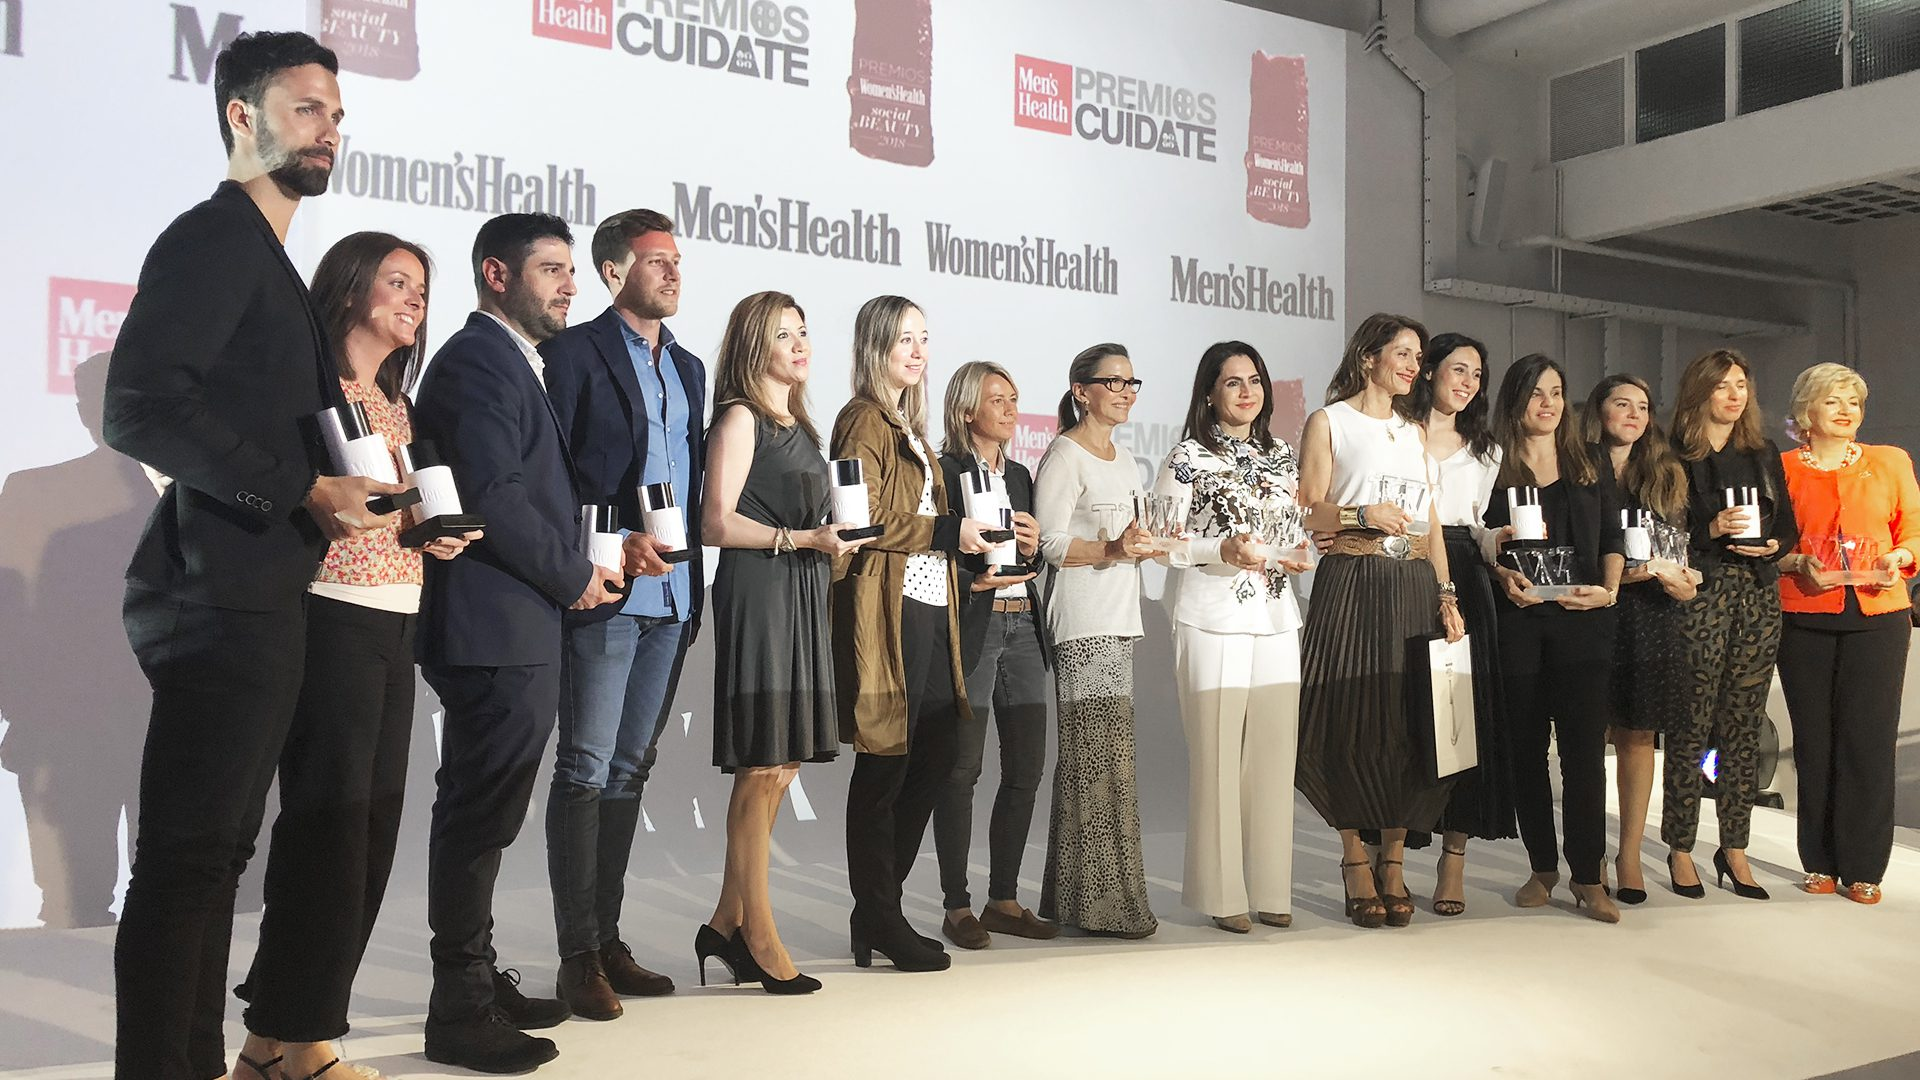 Entrega de Premios Cuidate 2018 by Men's Health